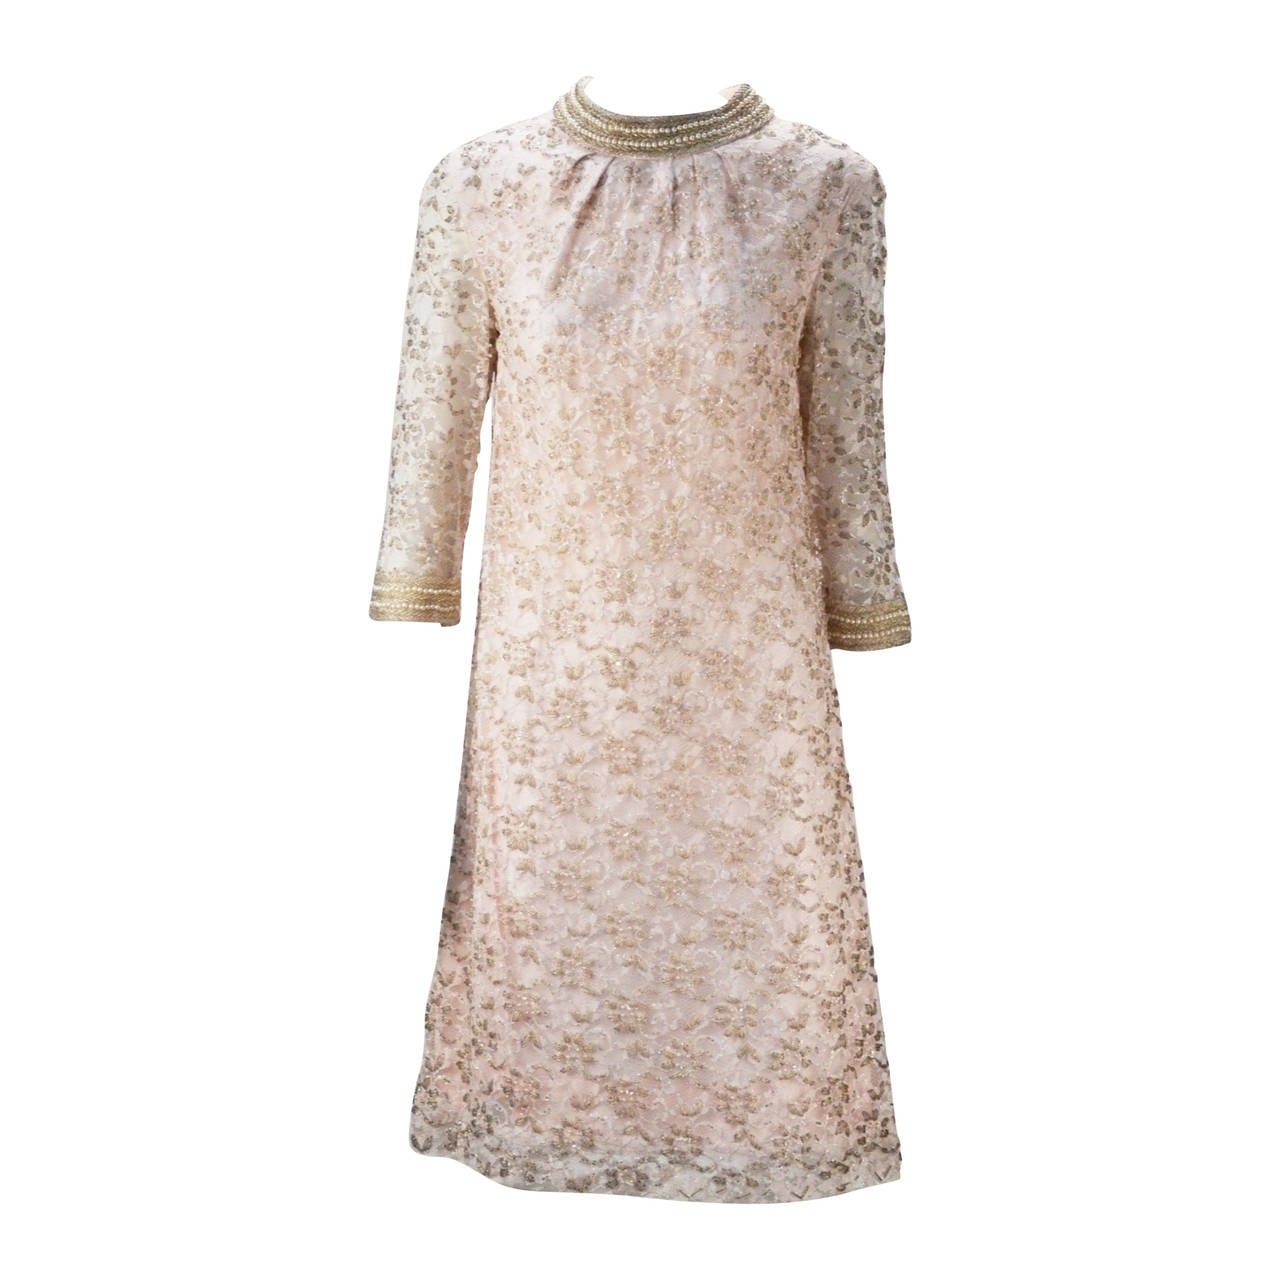 1960s Valentina Lace Beaded Cocktail Dress For Sale at 1stdibs